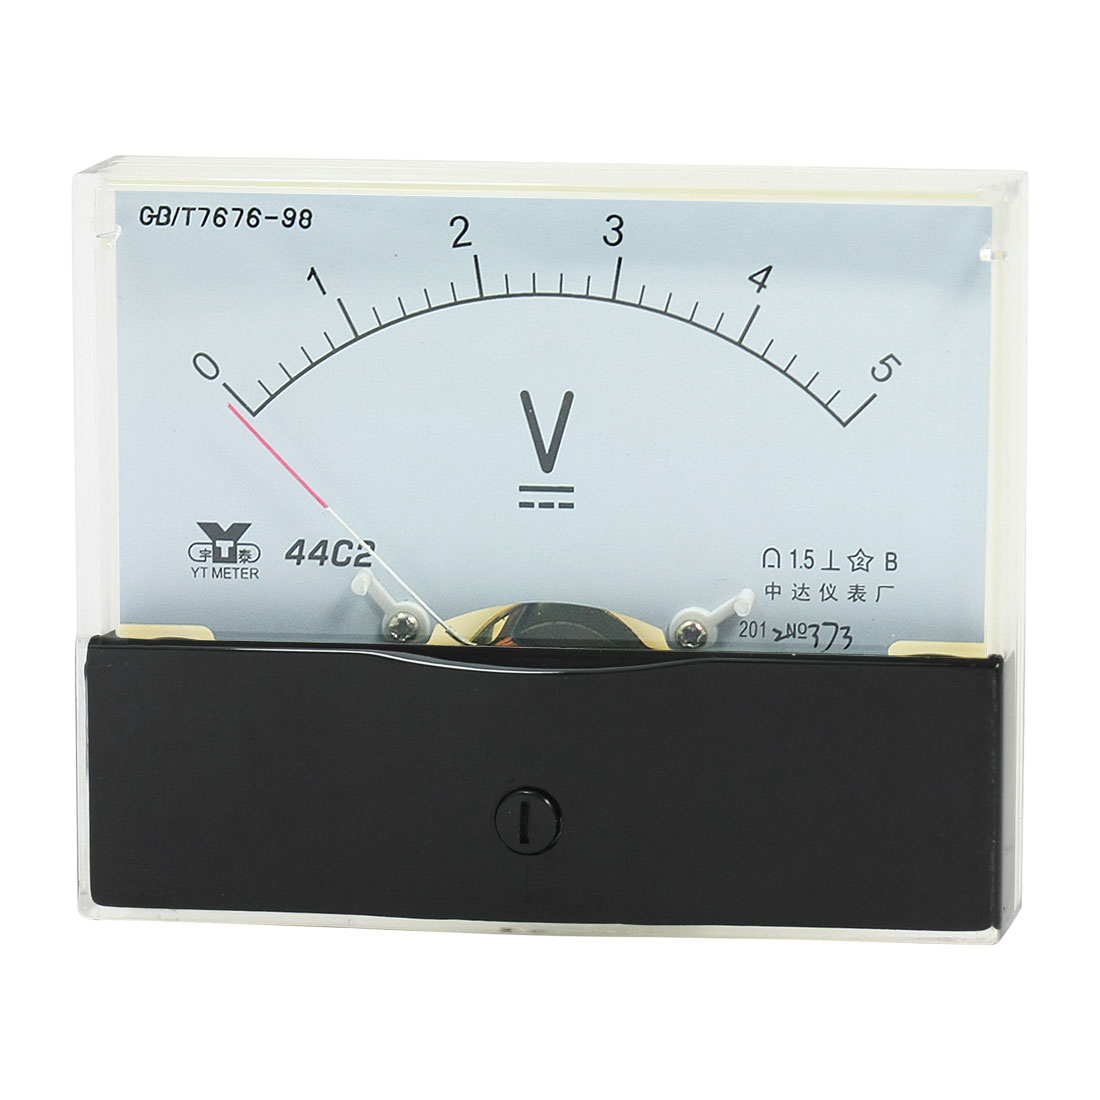 Rectangle Measurement Tool Analog Panel Voltmeter Volt Meter DC 0 - 5V Measuring Range 44C2